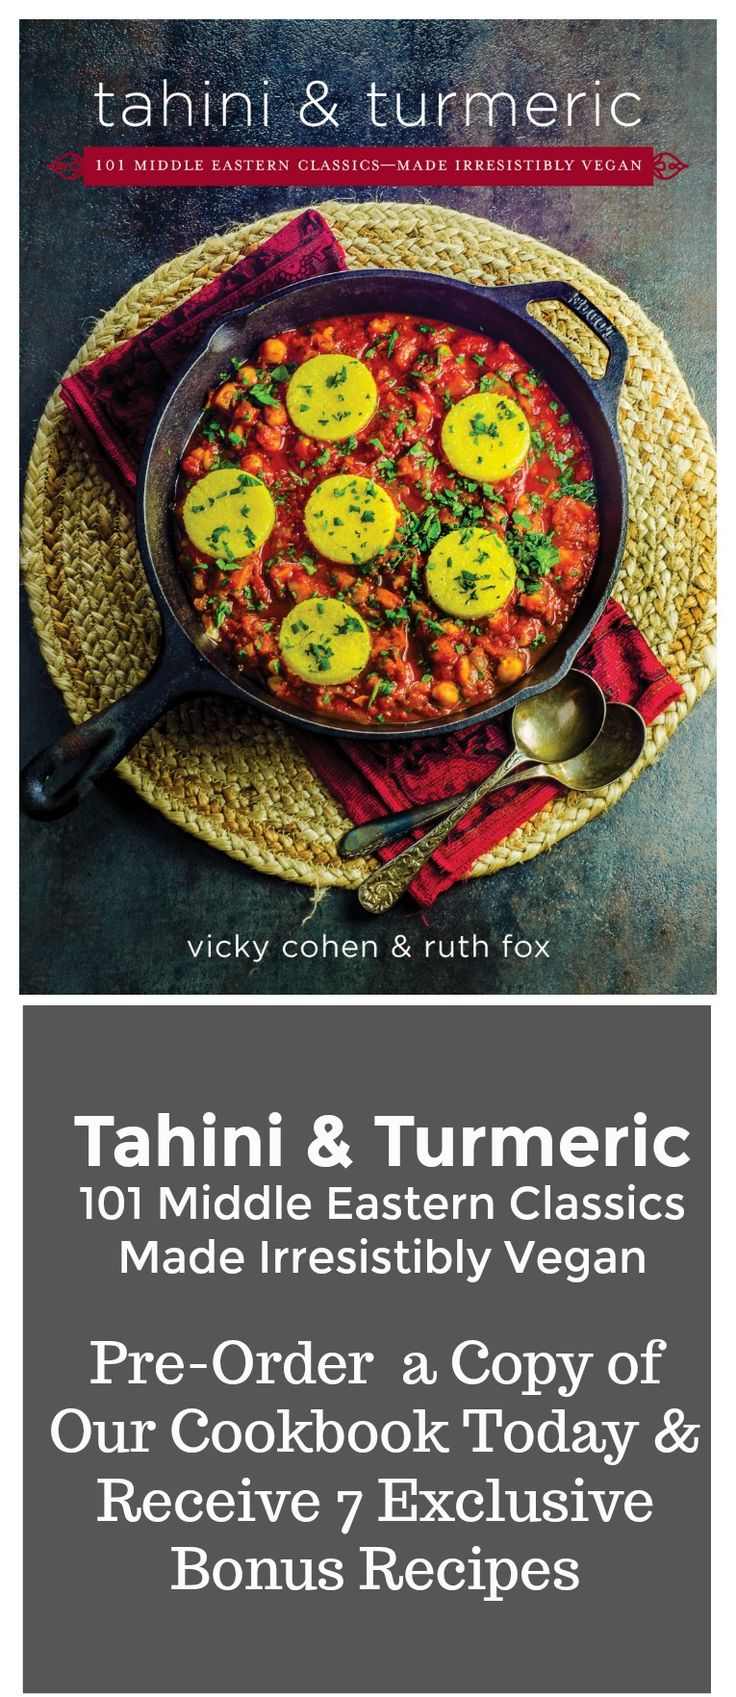 We are SO excited to announce the upcoming release of our first cookbook,  Tahini and Turmeric , a collection of 101 of our most mouth-watering Middle Eastern recipes, made irresistibly vegan. This beautifully-photographed, easy-to-follow cookbook will take your weekday and holiday cooking from simple to sublime!  #vegan #Cookbook #MiddleEastern